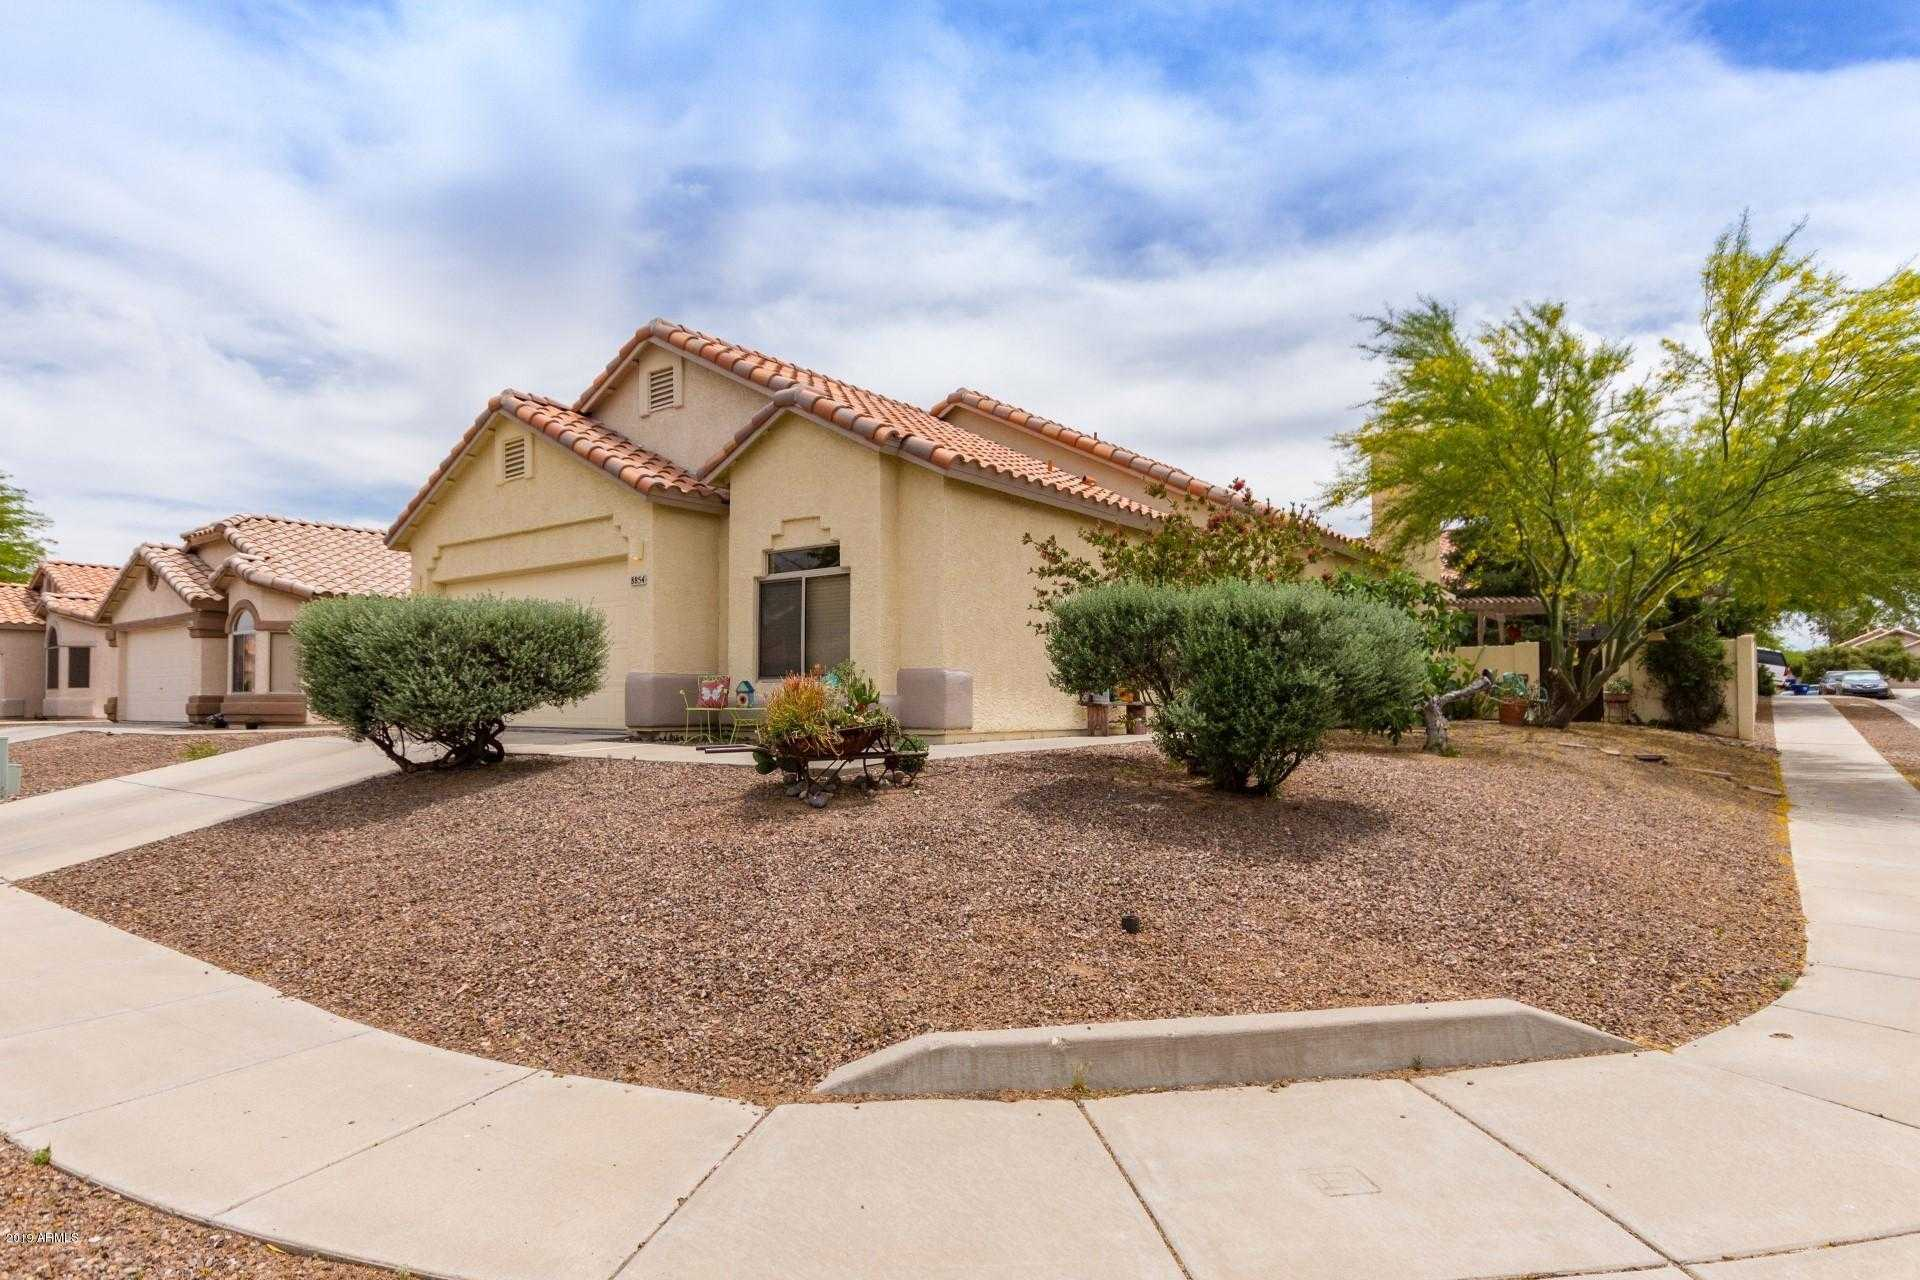 $200,000 - 3Br/2Ba - Home for Sale in Horton Homes At Rita Ranch, Tucson